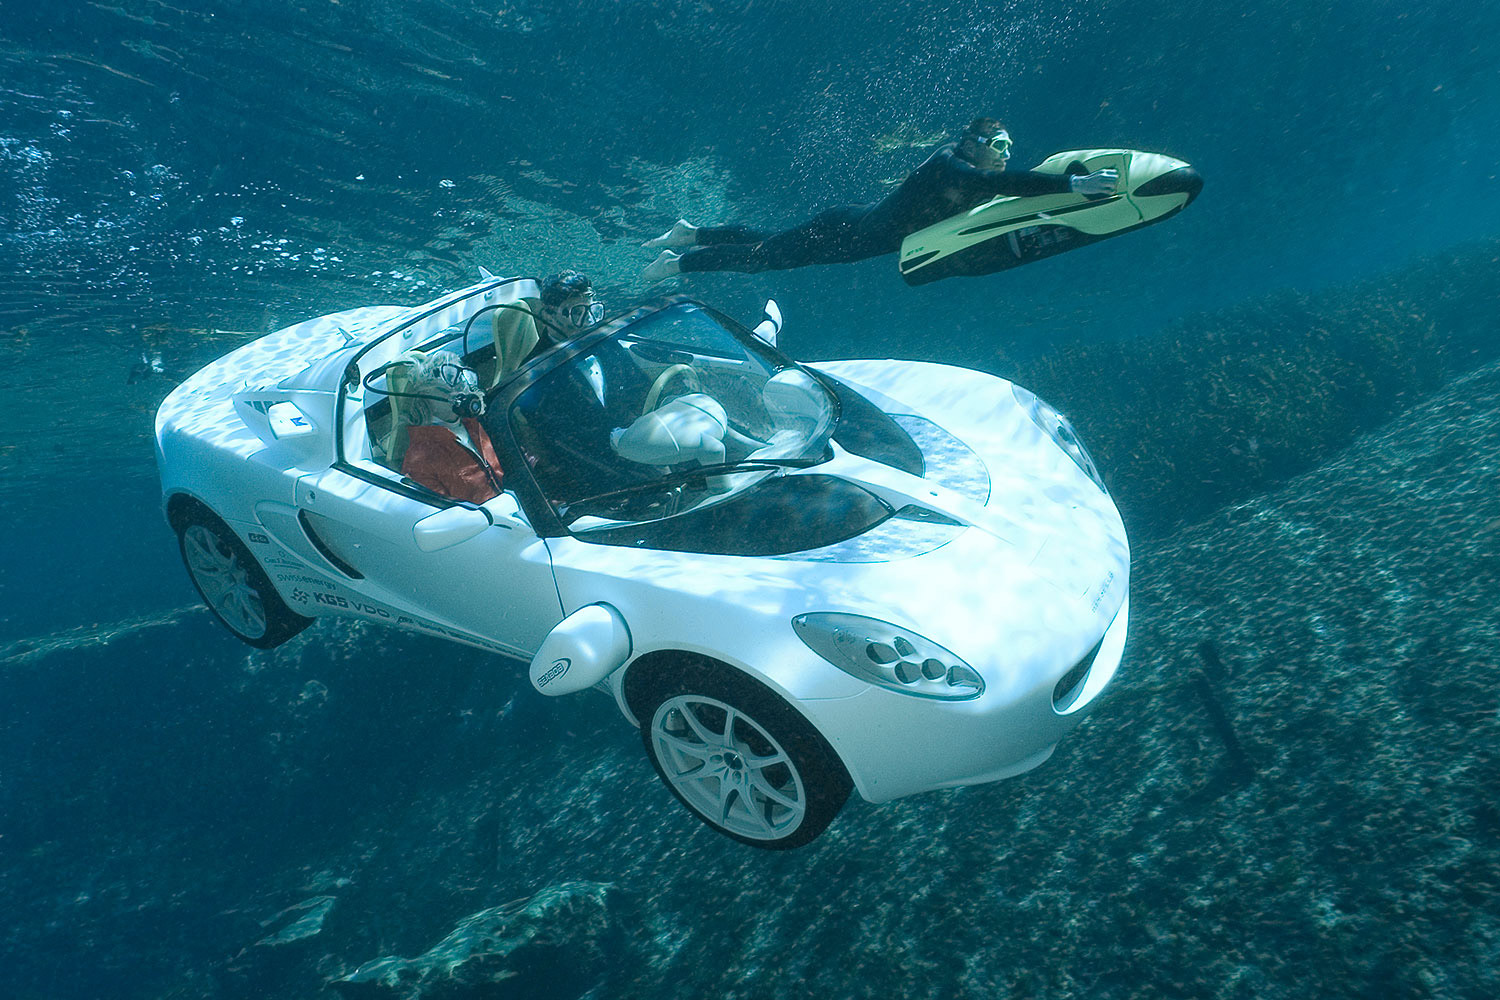 Real Underwater James Bond Car!